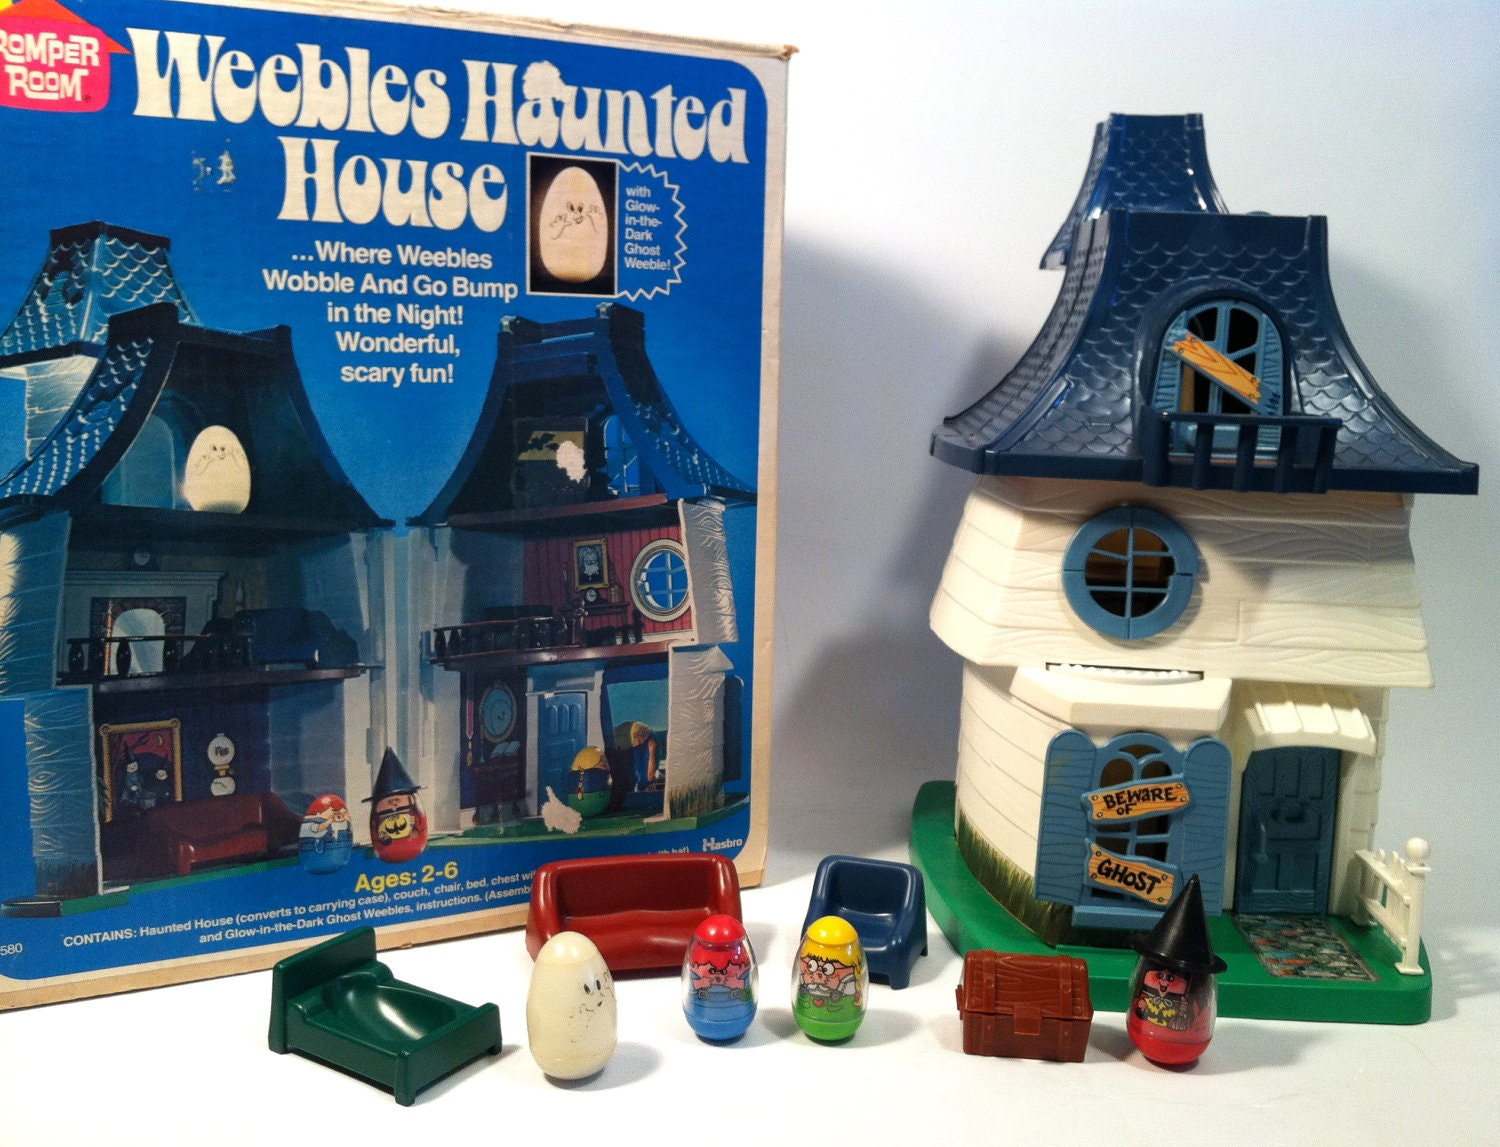 Toys For House : Vintage weebles haunted house complete set in box